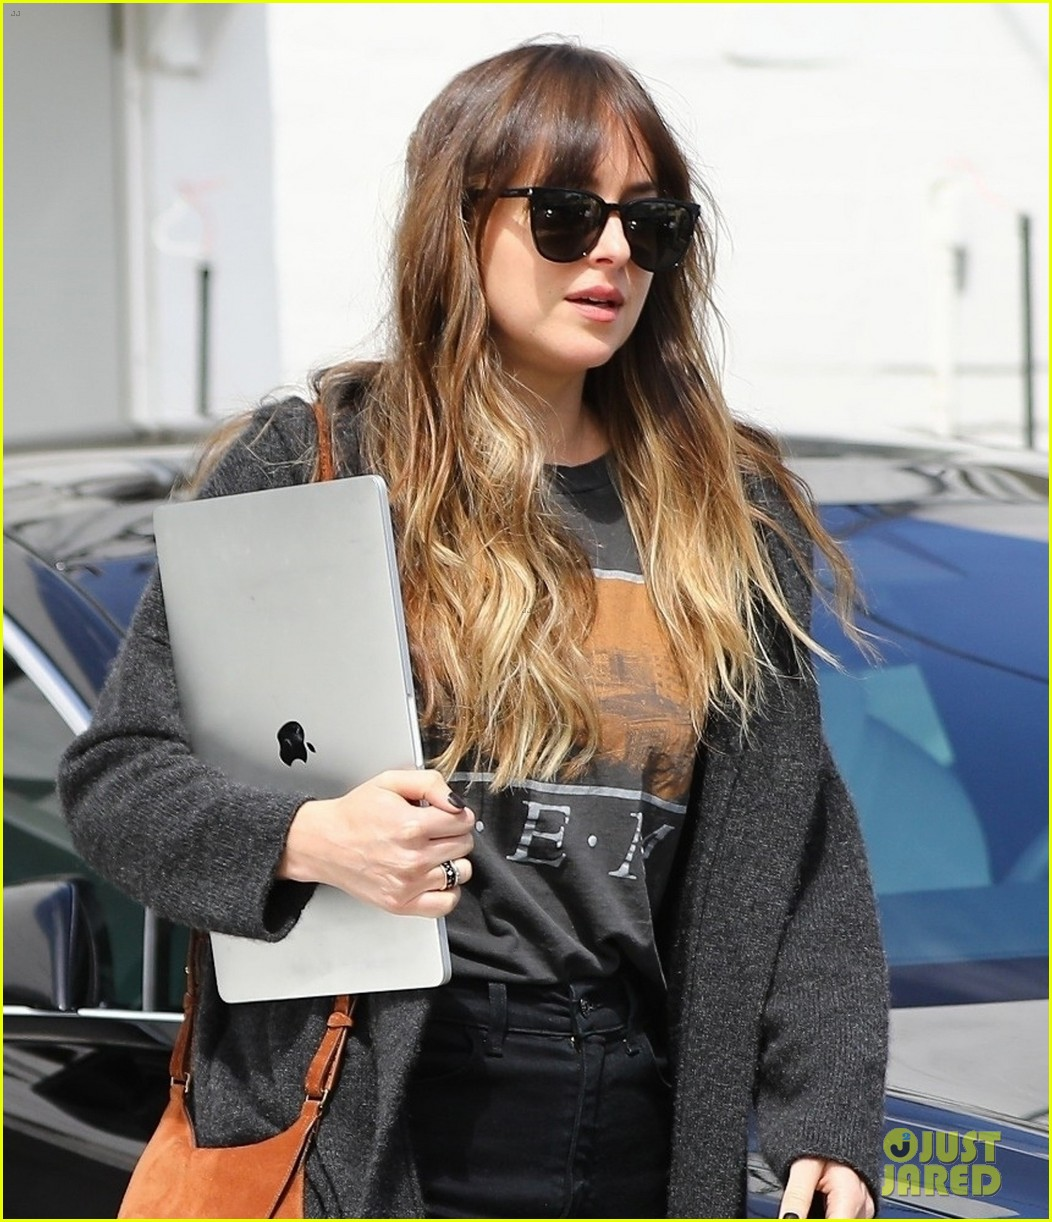 dakota johnson leaves the salon with her laptop 01